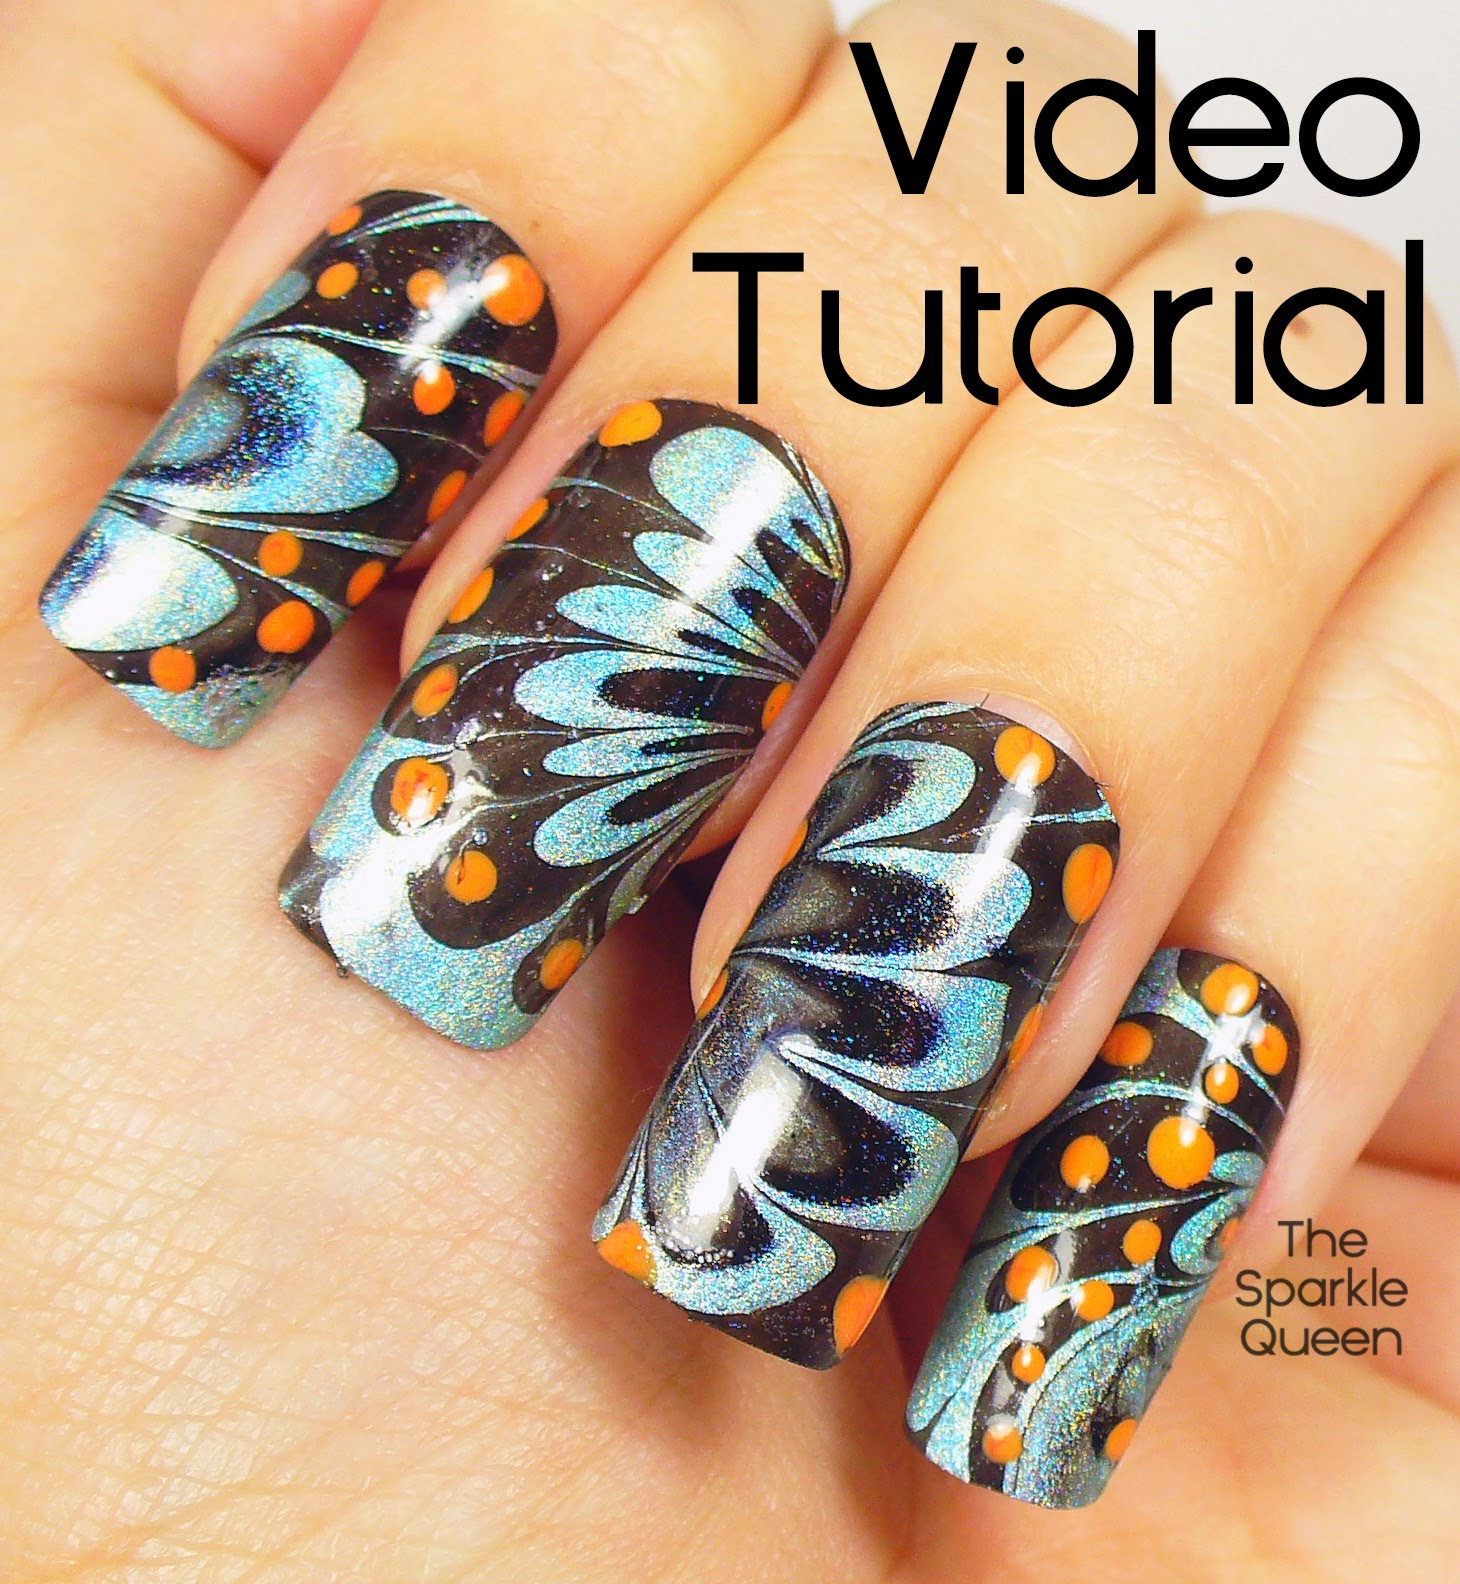 Video Tutorial for my Water Marble Nail Art for the April